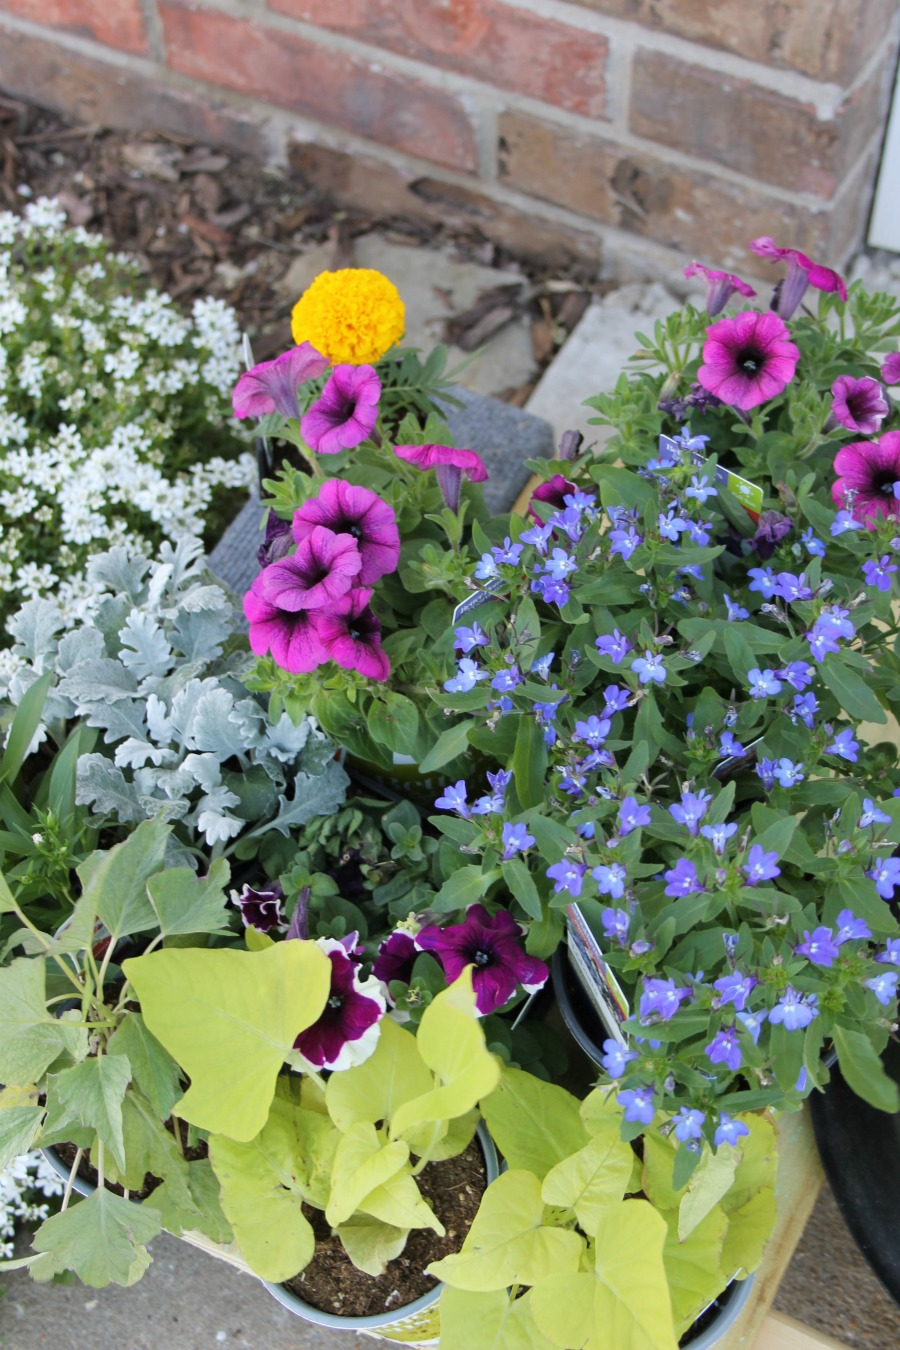 Curb Appeal Ideas - Plant Fresh Seasonal Flowers in Flowerbeds and Boxes